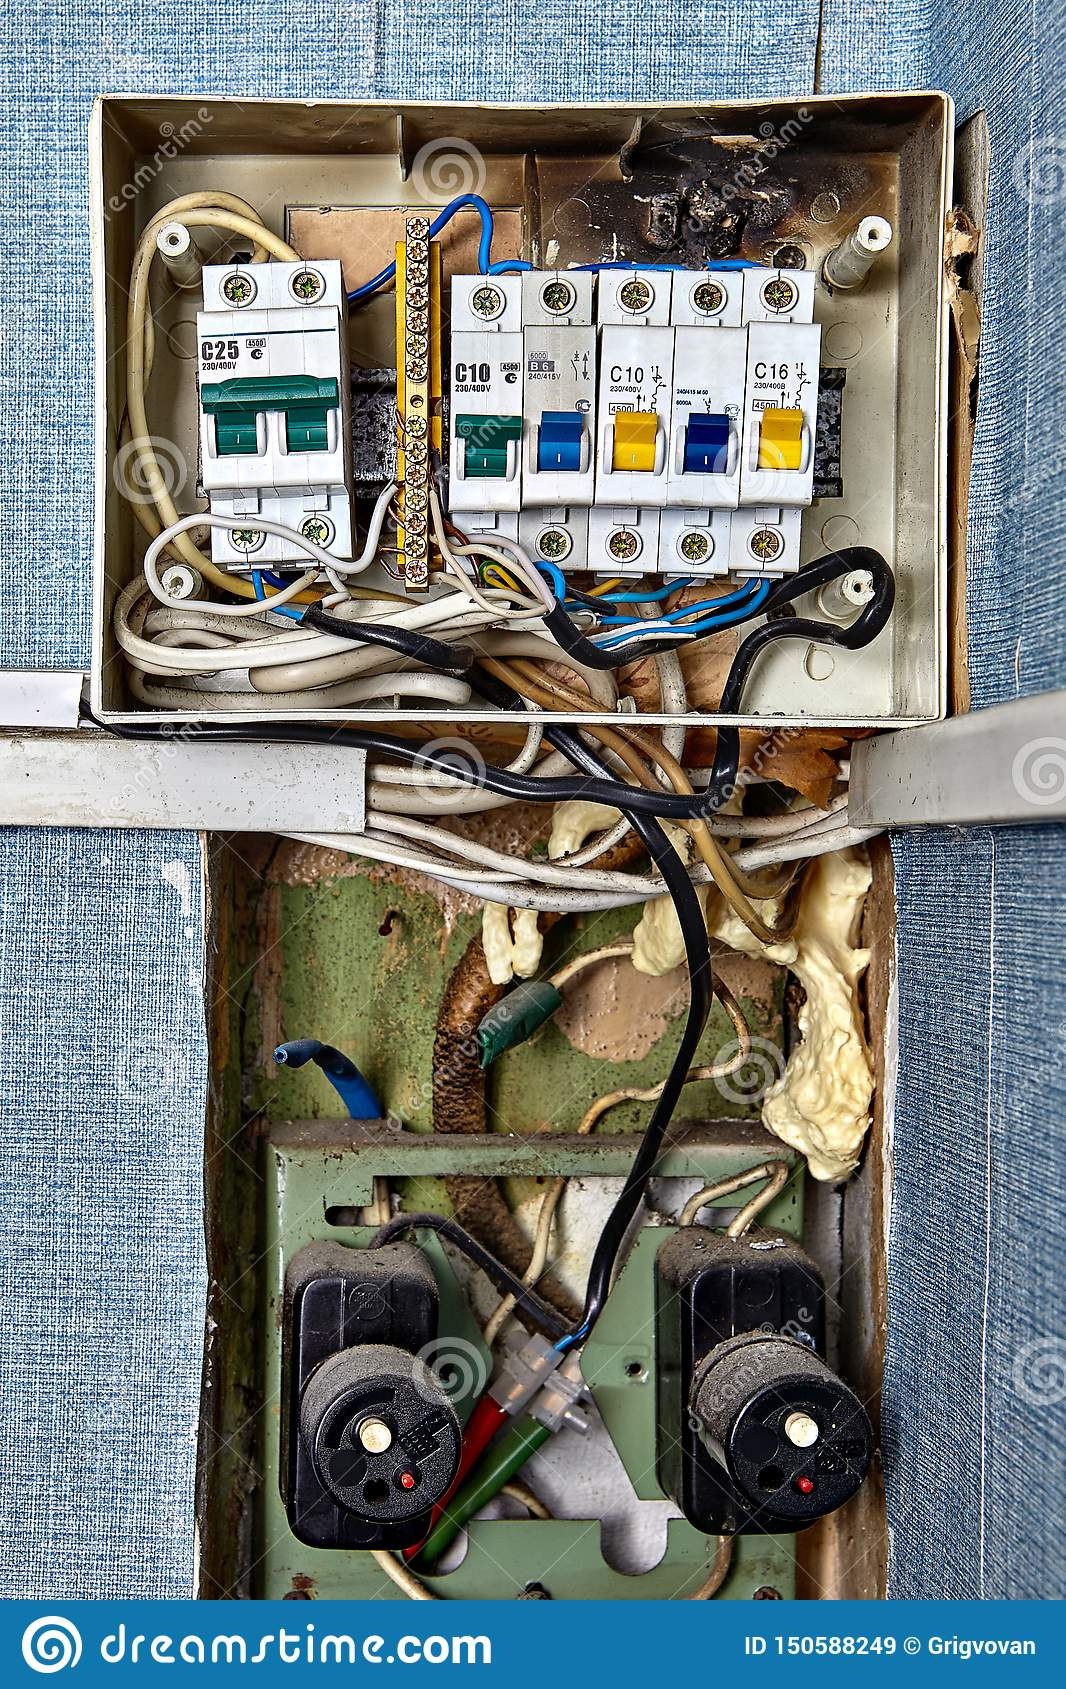 Fuse Box With Burnt Circuit Breaker Panel Stock Image Image Of Cabinet Board 150588249